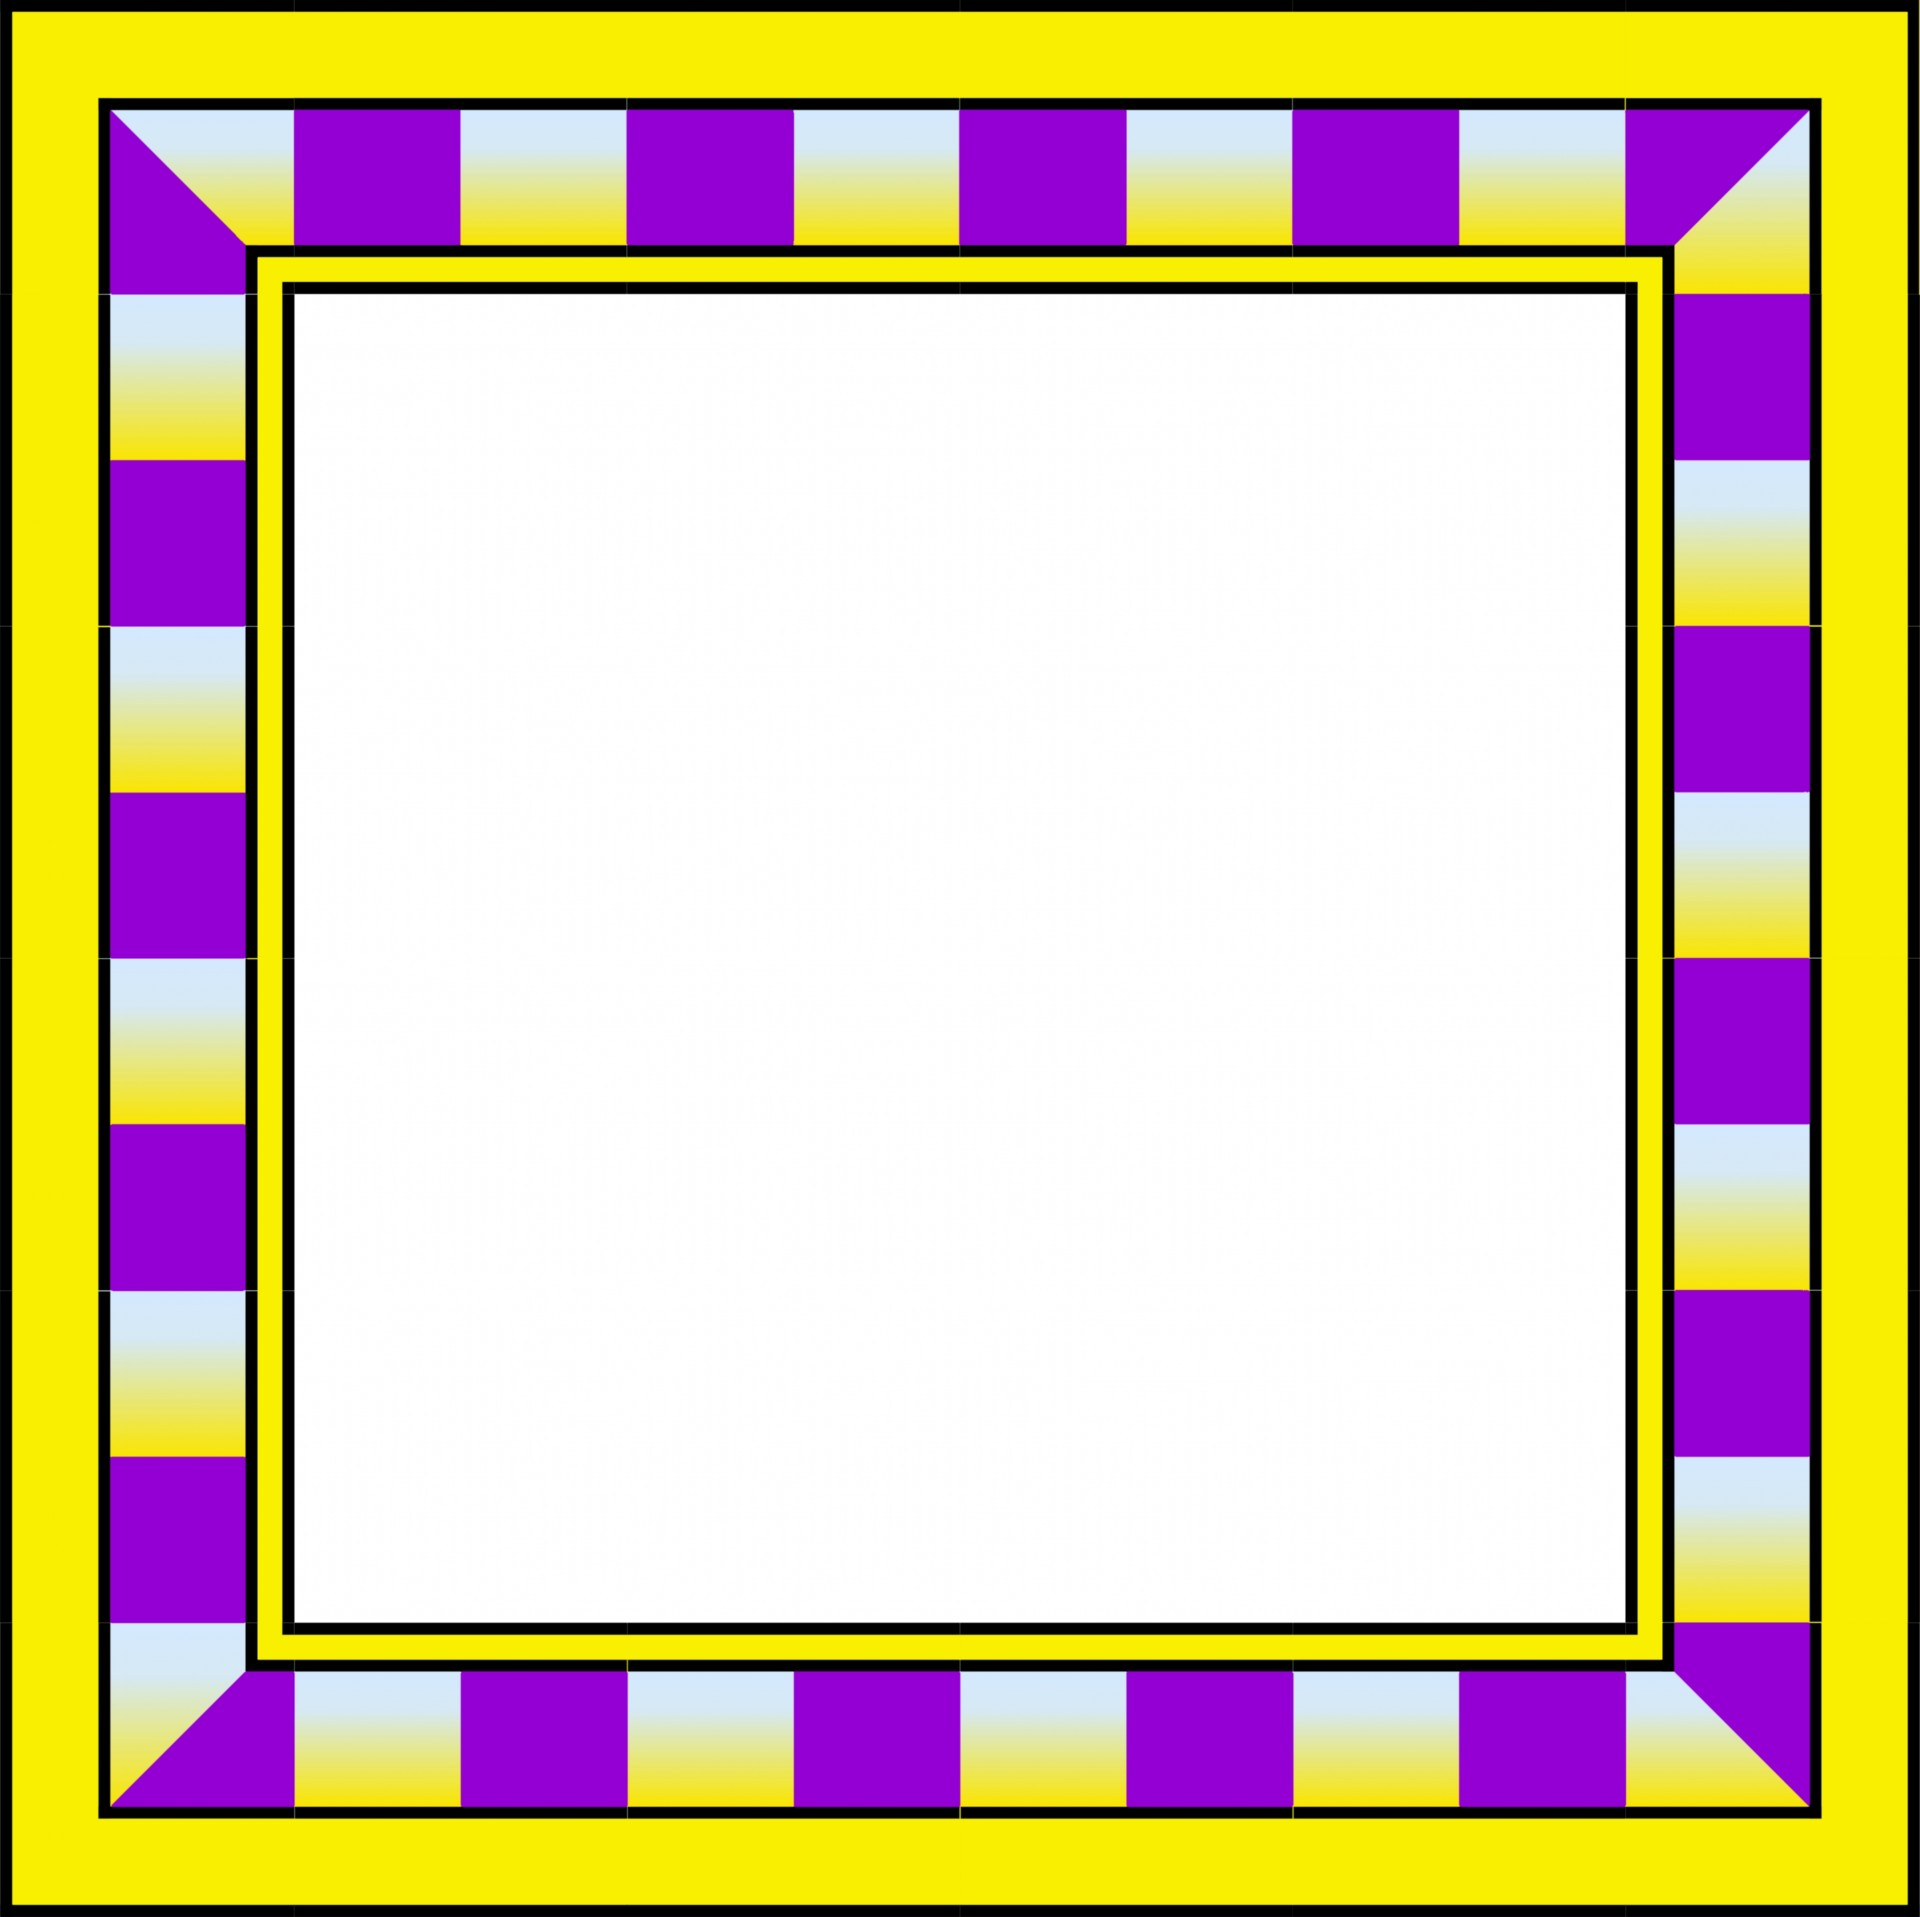 Check Frame Free Stock Photo - Public Domain Pictures